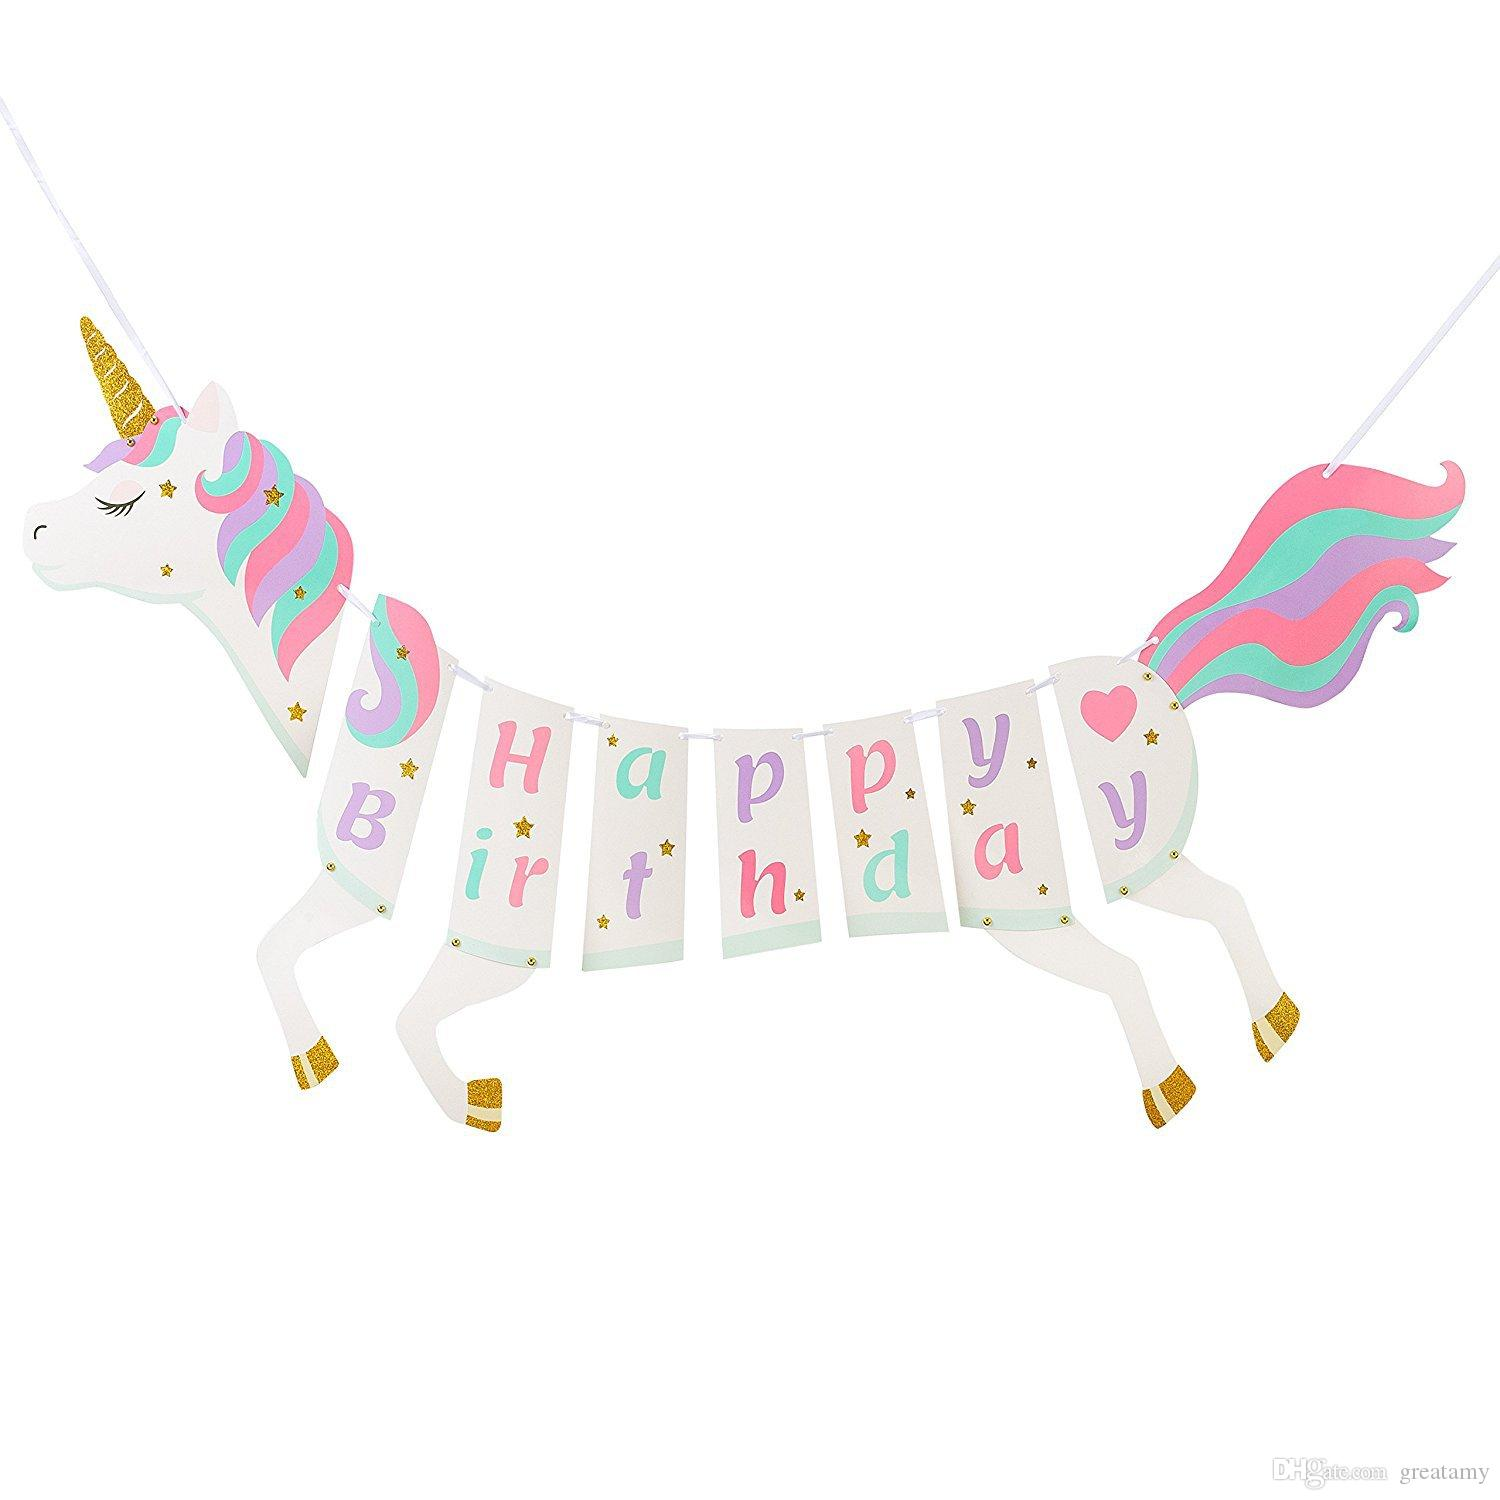 2018 Unicorn Flower Happy Birthday Flag Fashion New Christmas Party #8: unicorn flower happy birthday flag fashion